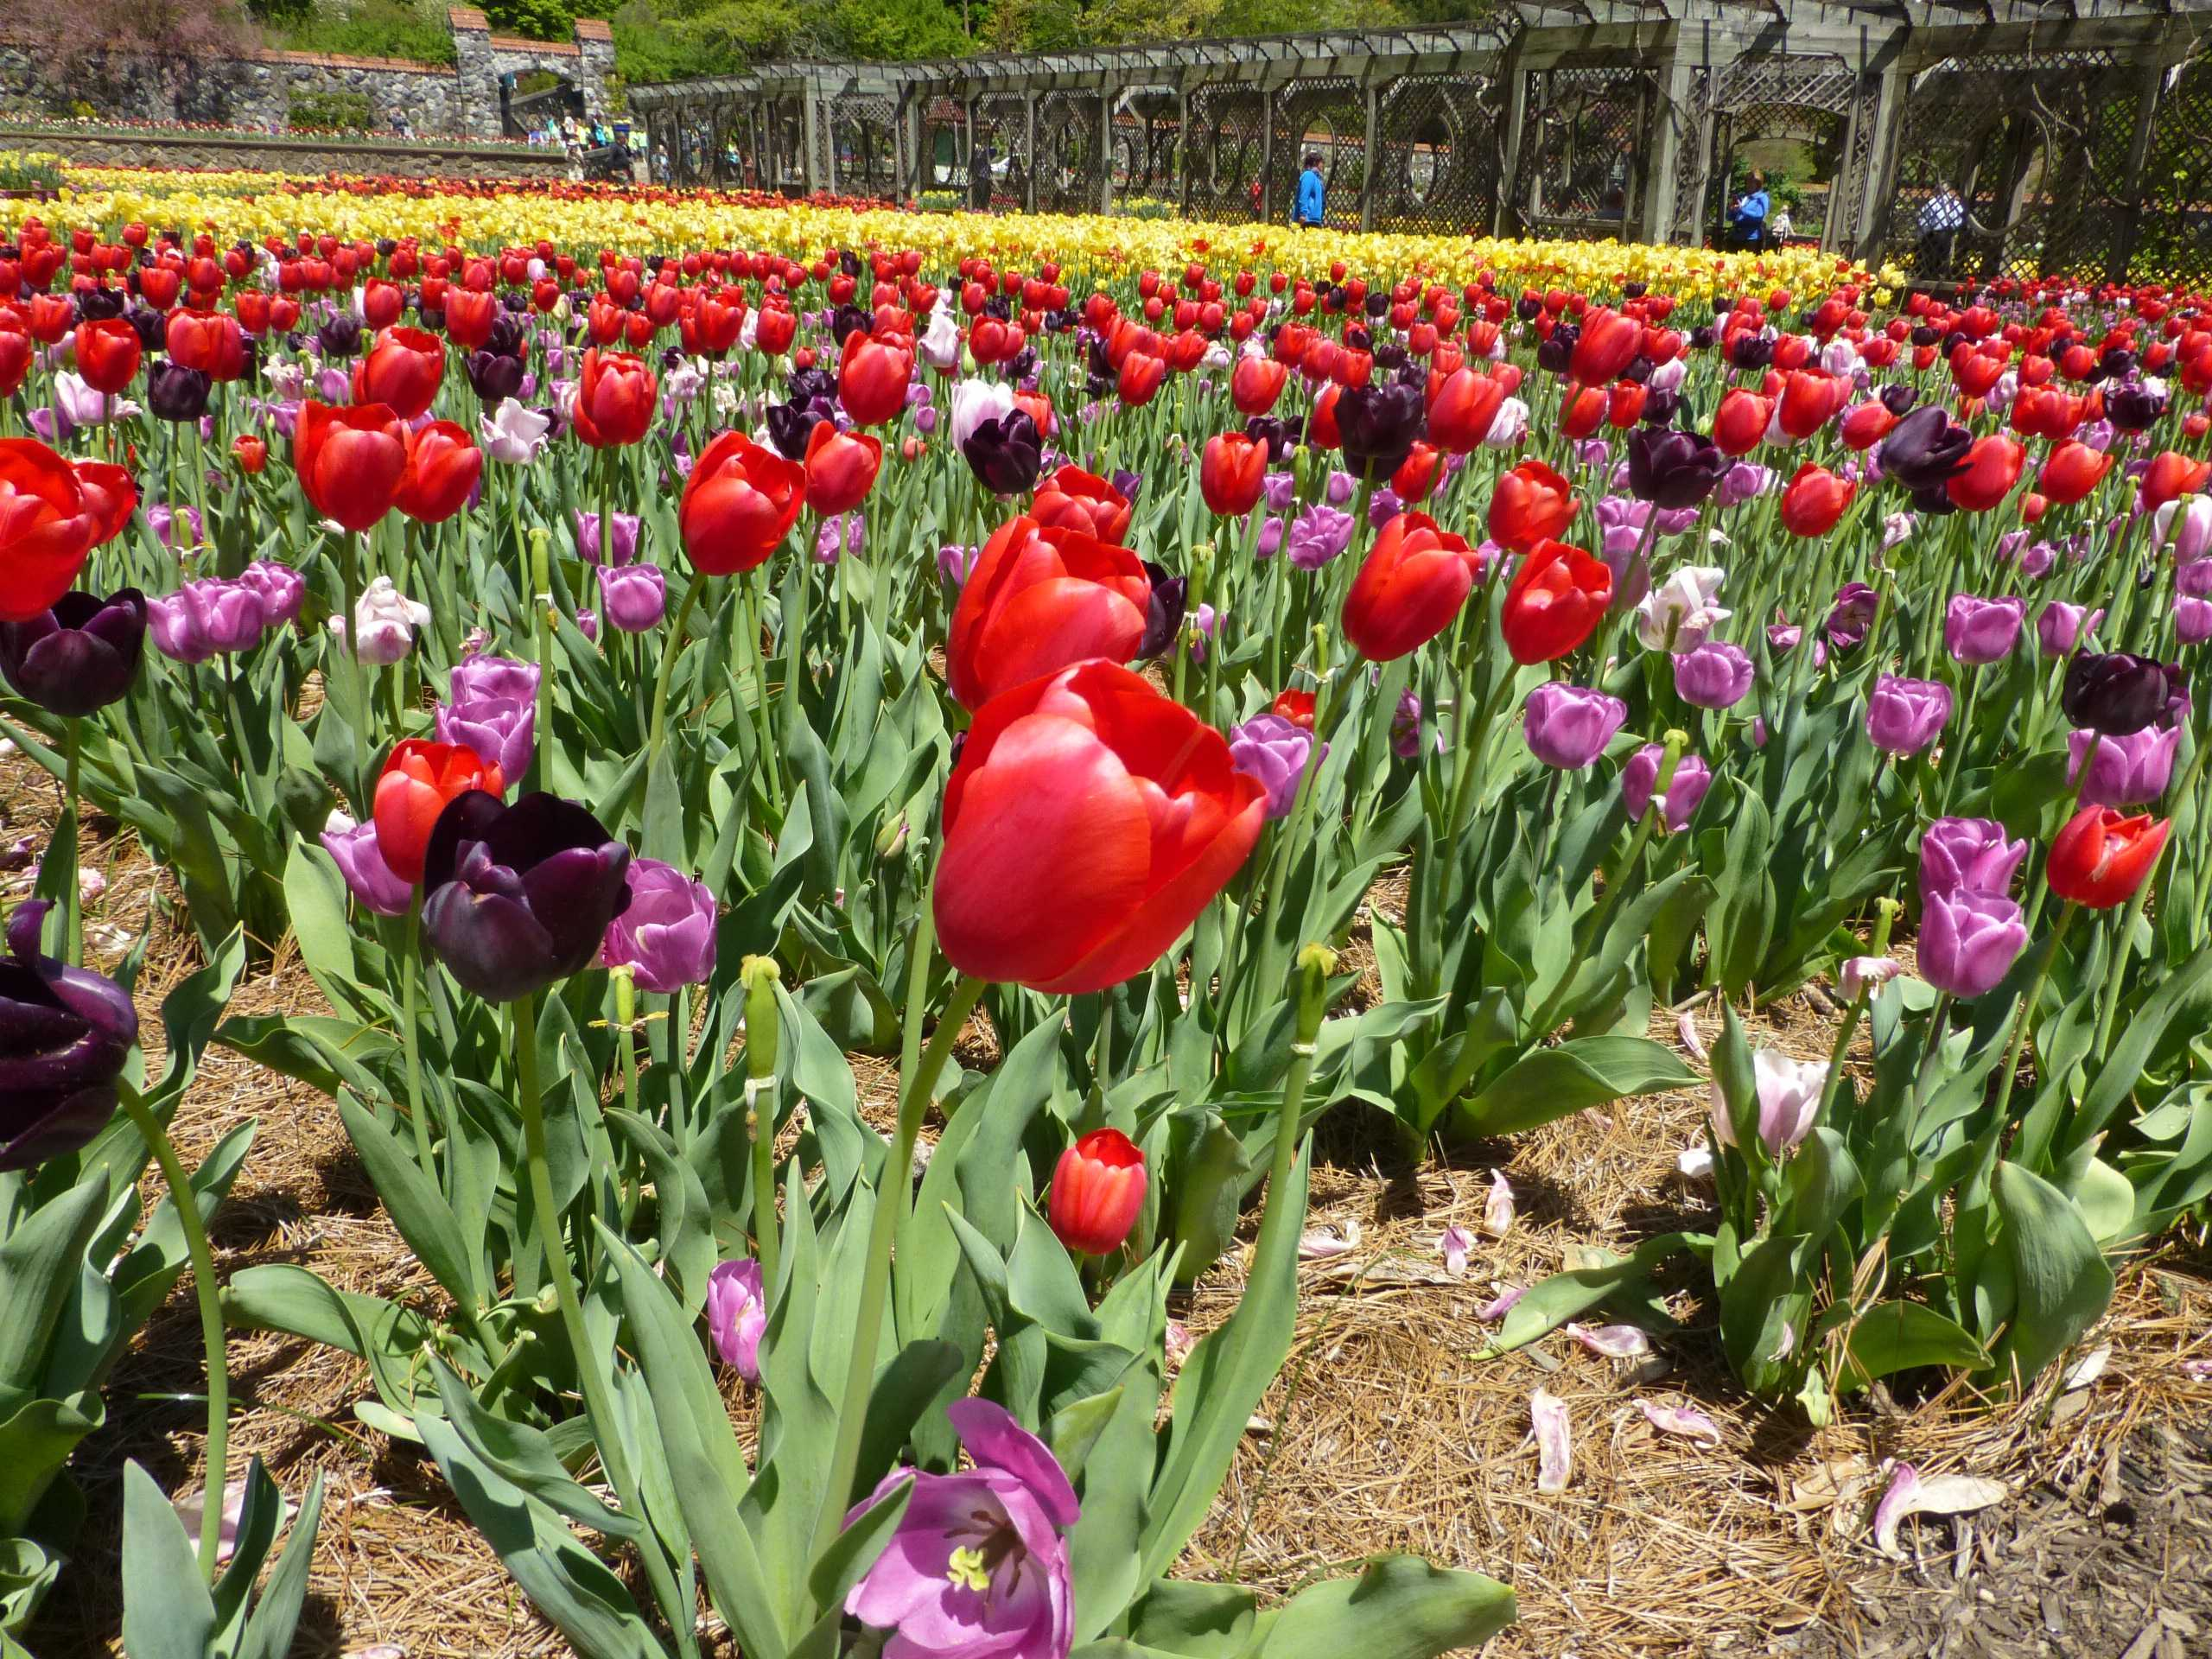 Thousands of flowering tulips in several different colors in a garden